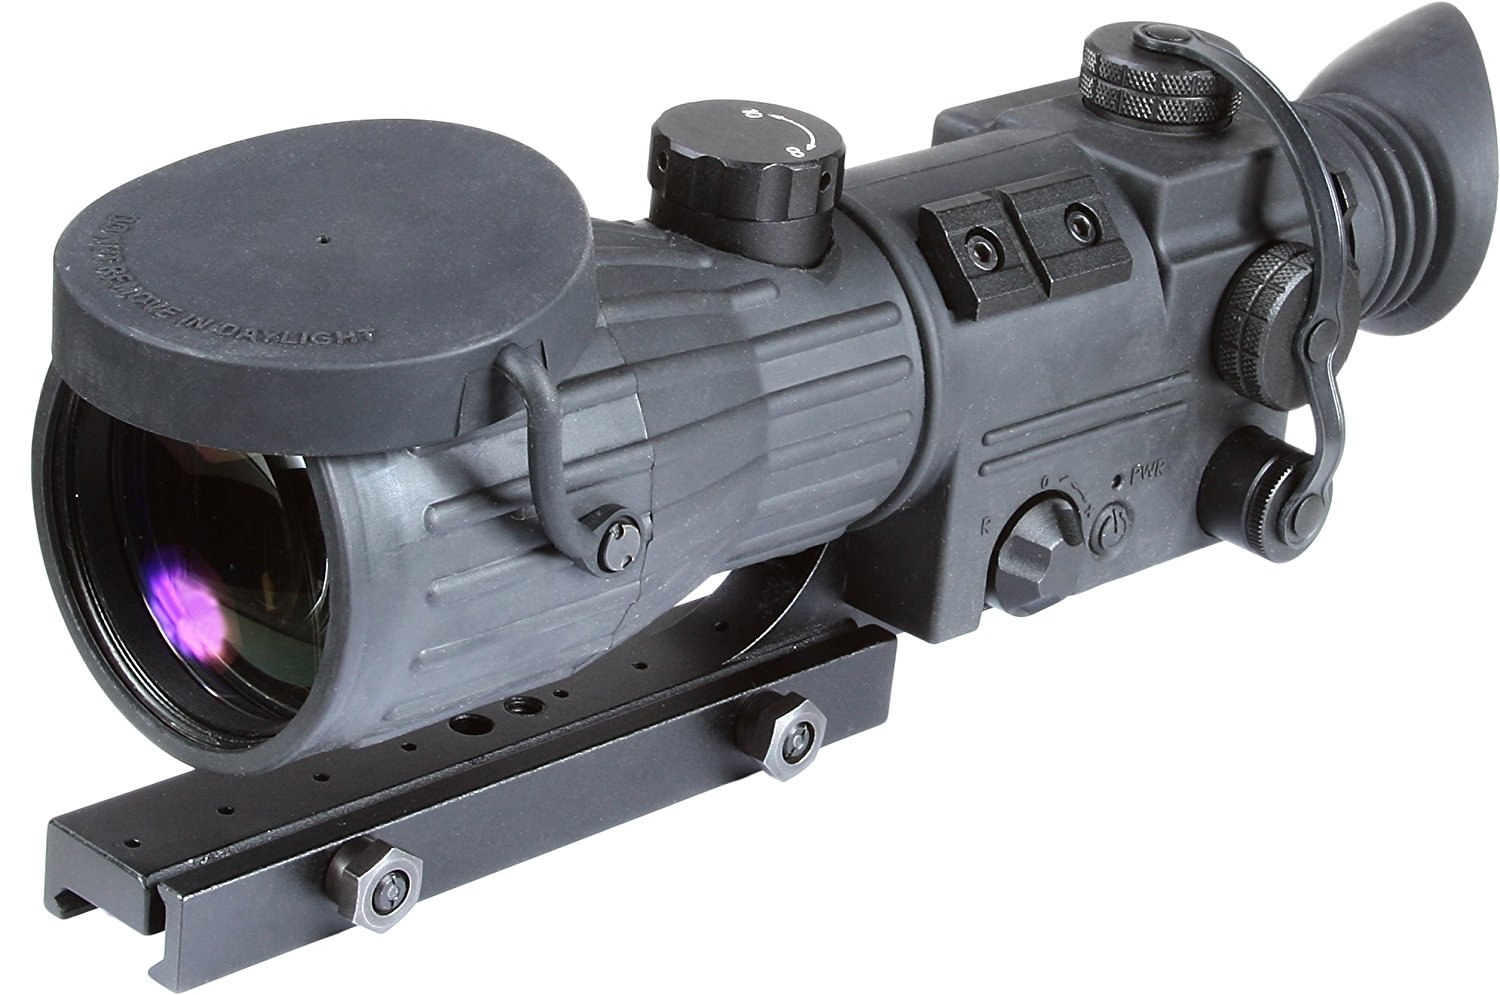 Armasight Orion 5x Gen 1+ Night Vision Rifle Scope Front View